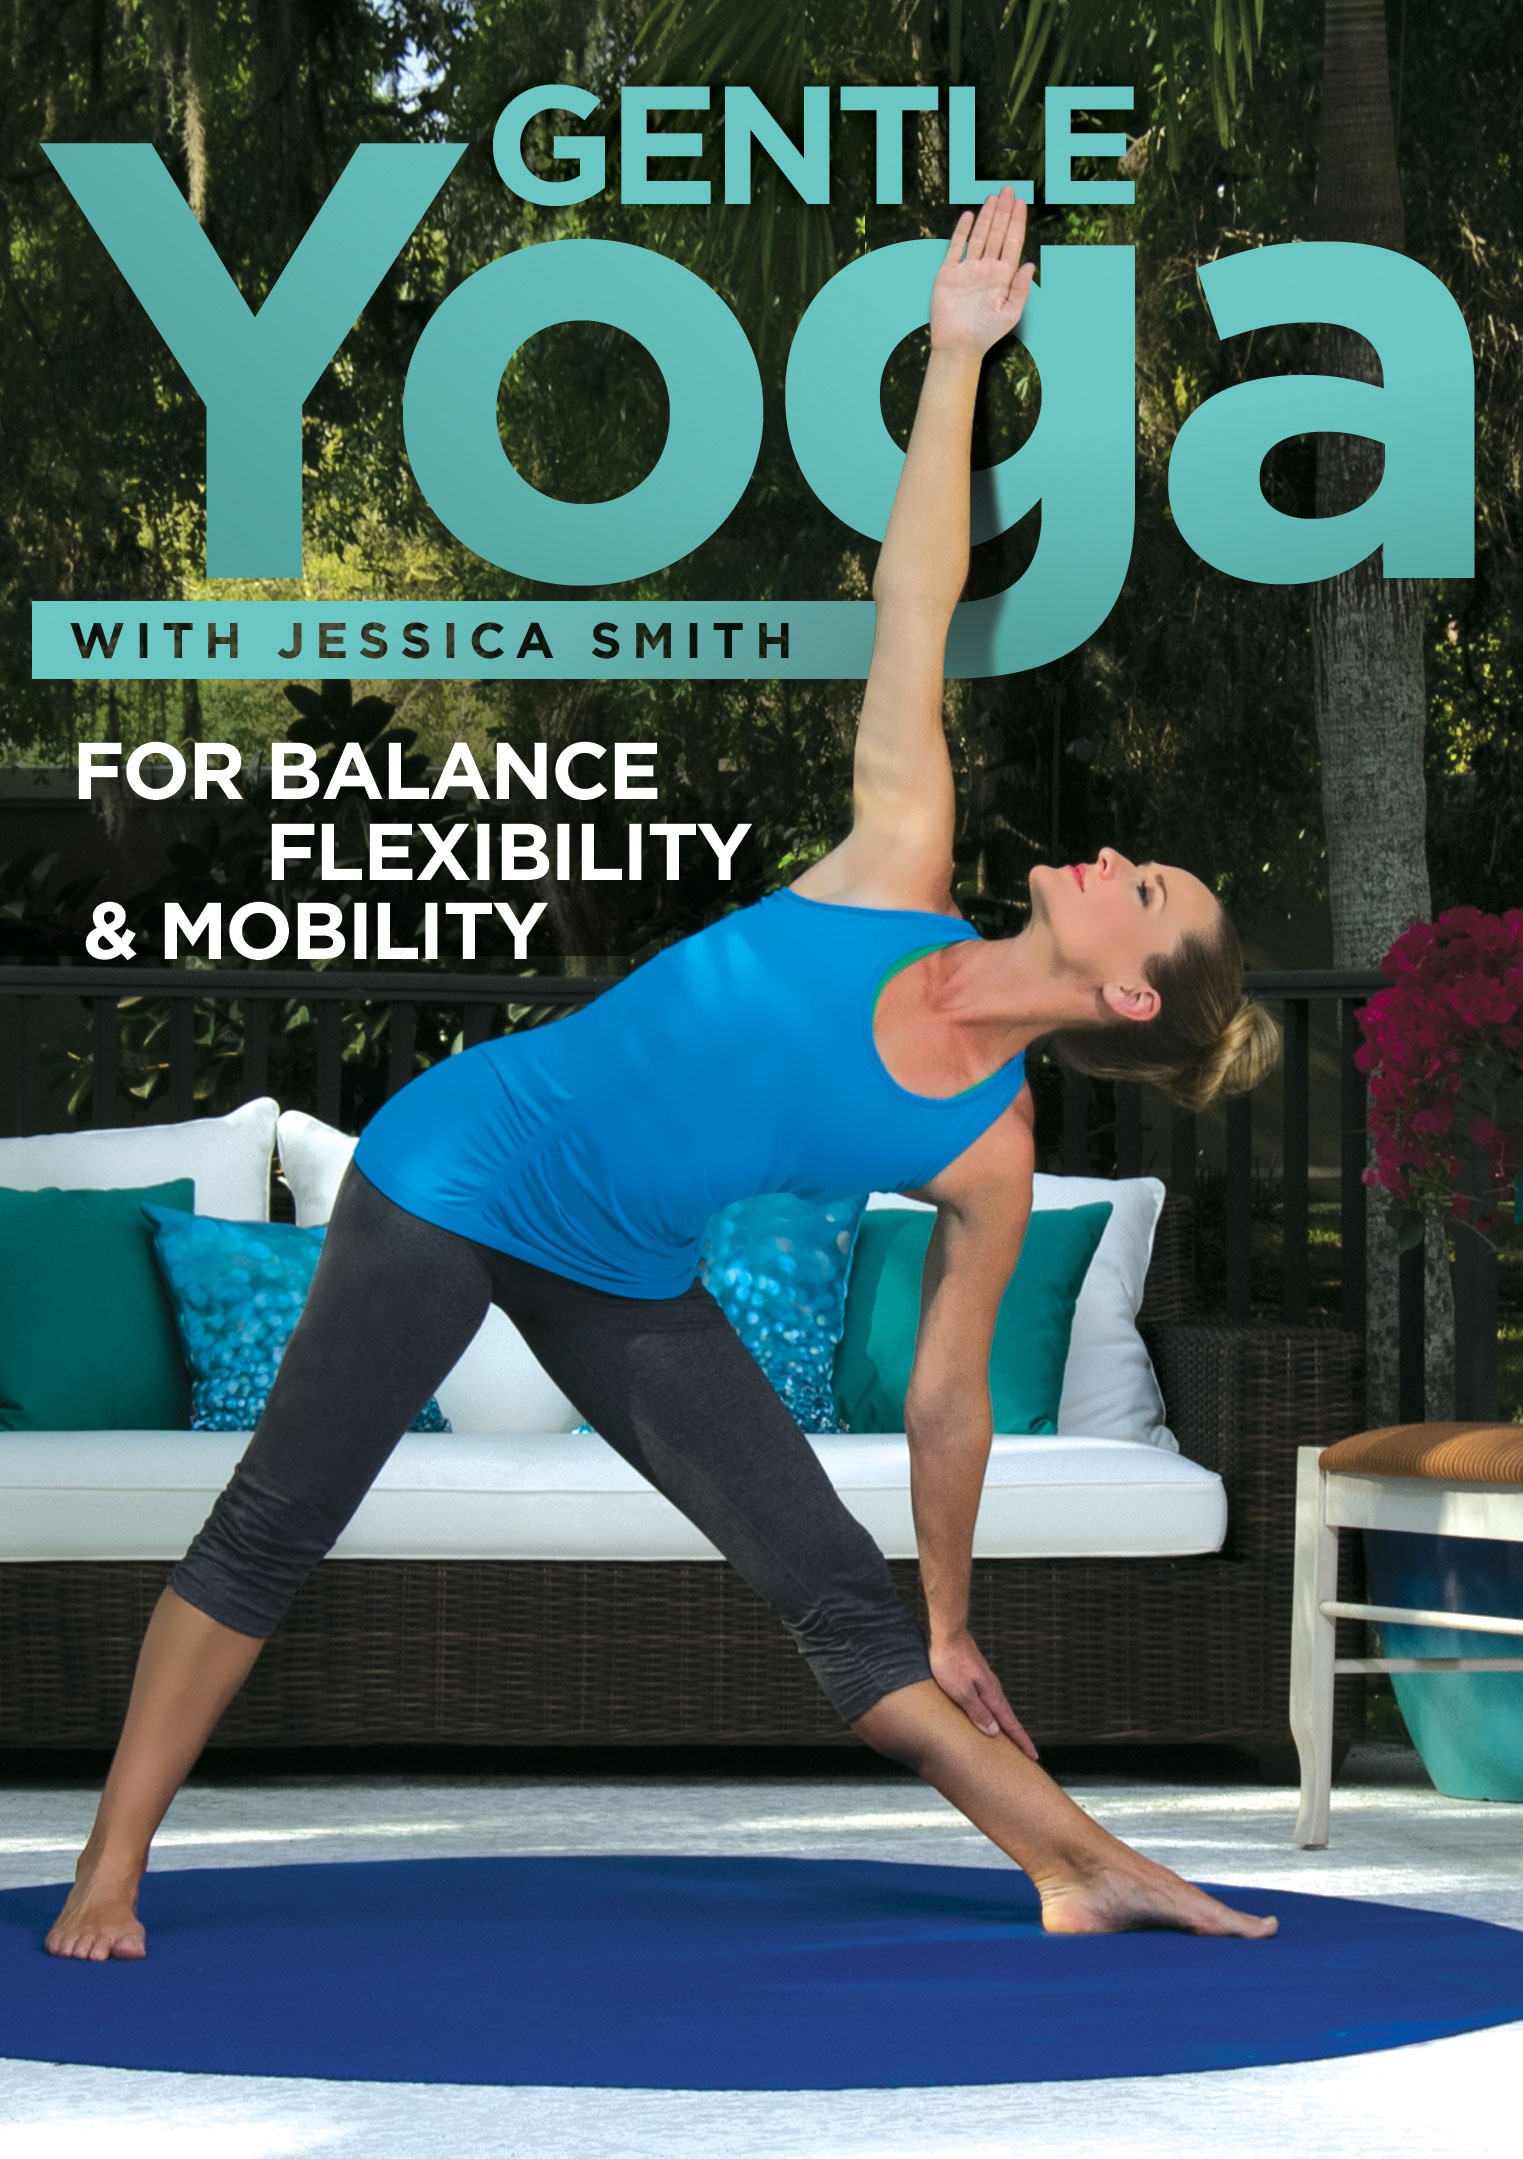 Gentle Yoga with Jessica Smith for Balance and Flexibility